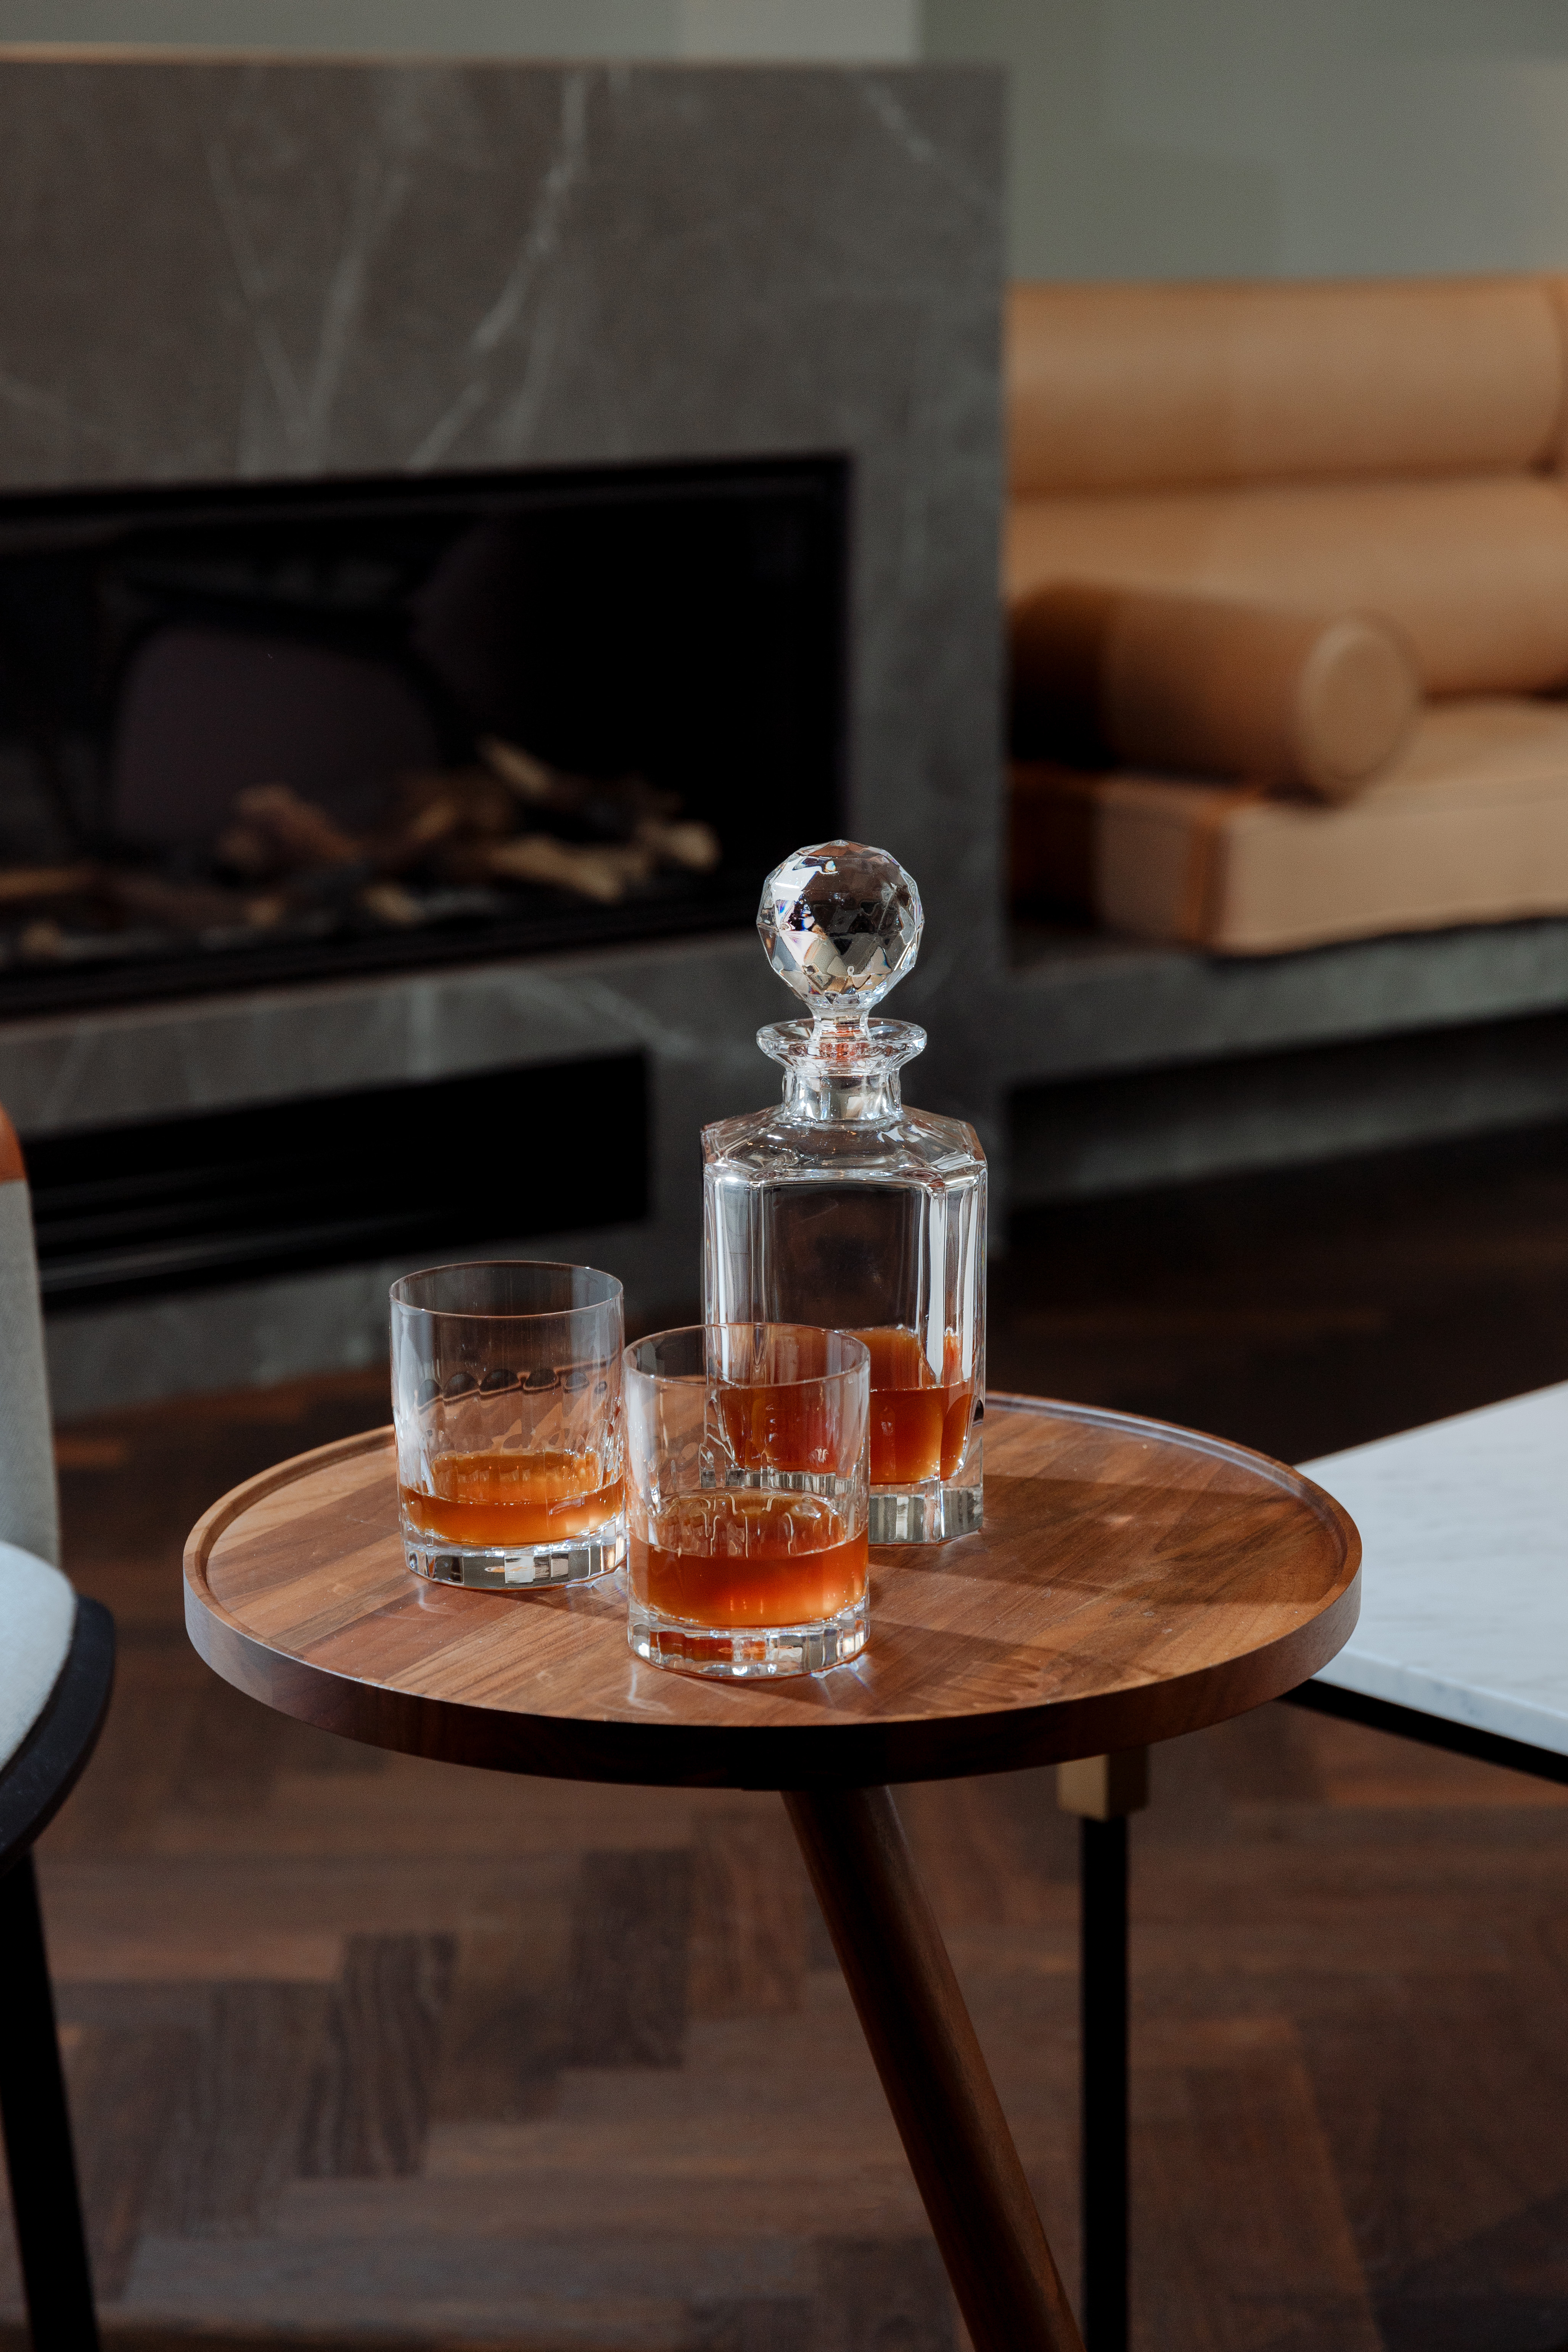 Ruckl-Rudolph-whisky-glass-tumbler-caraf